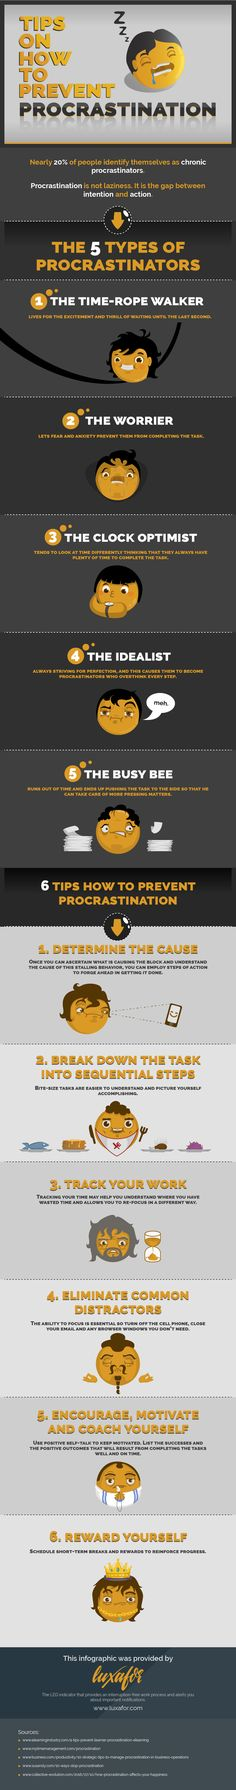 Tips On How To Prevent Procrastination #Infographic #HowTo #TimeMangement